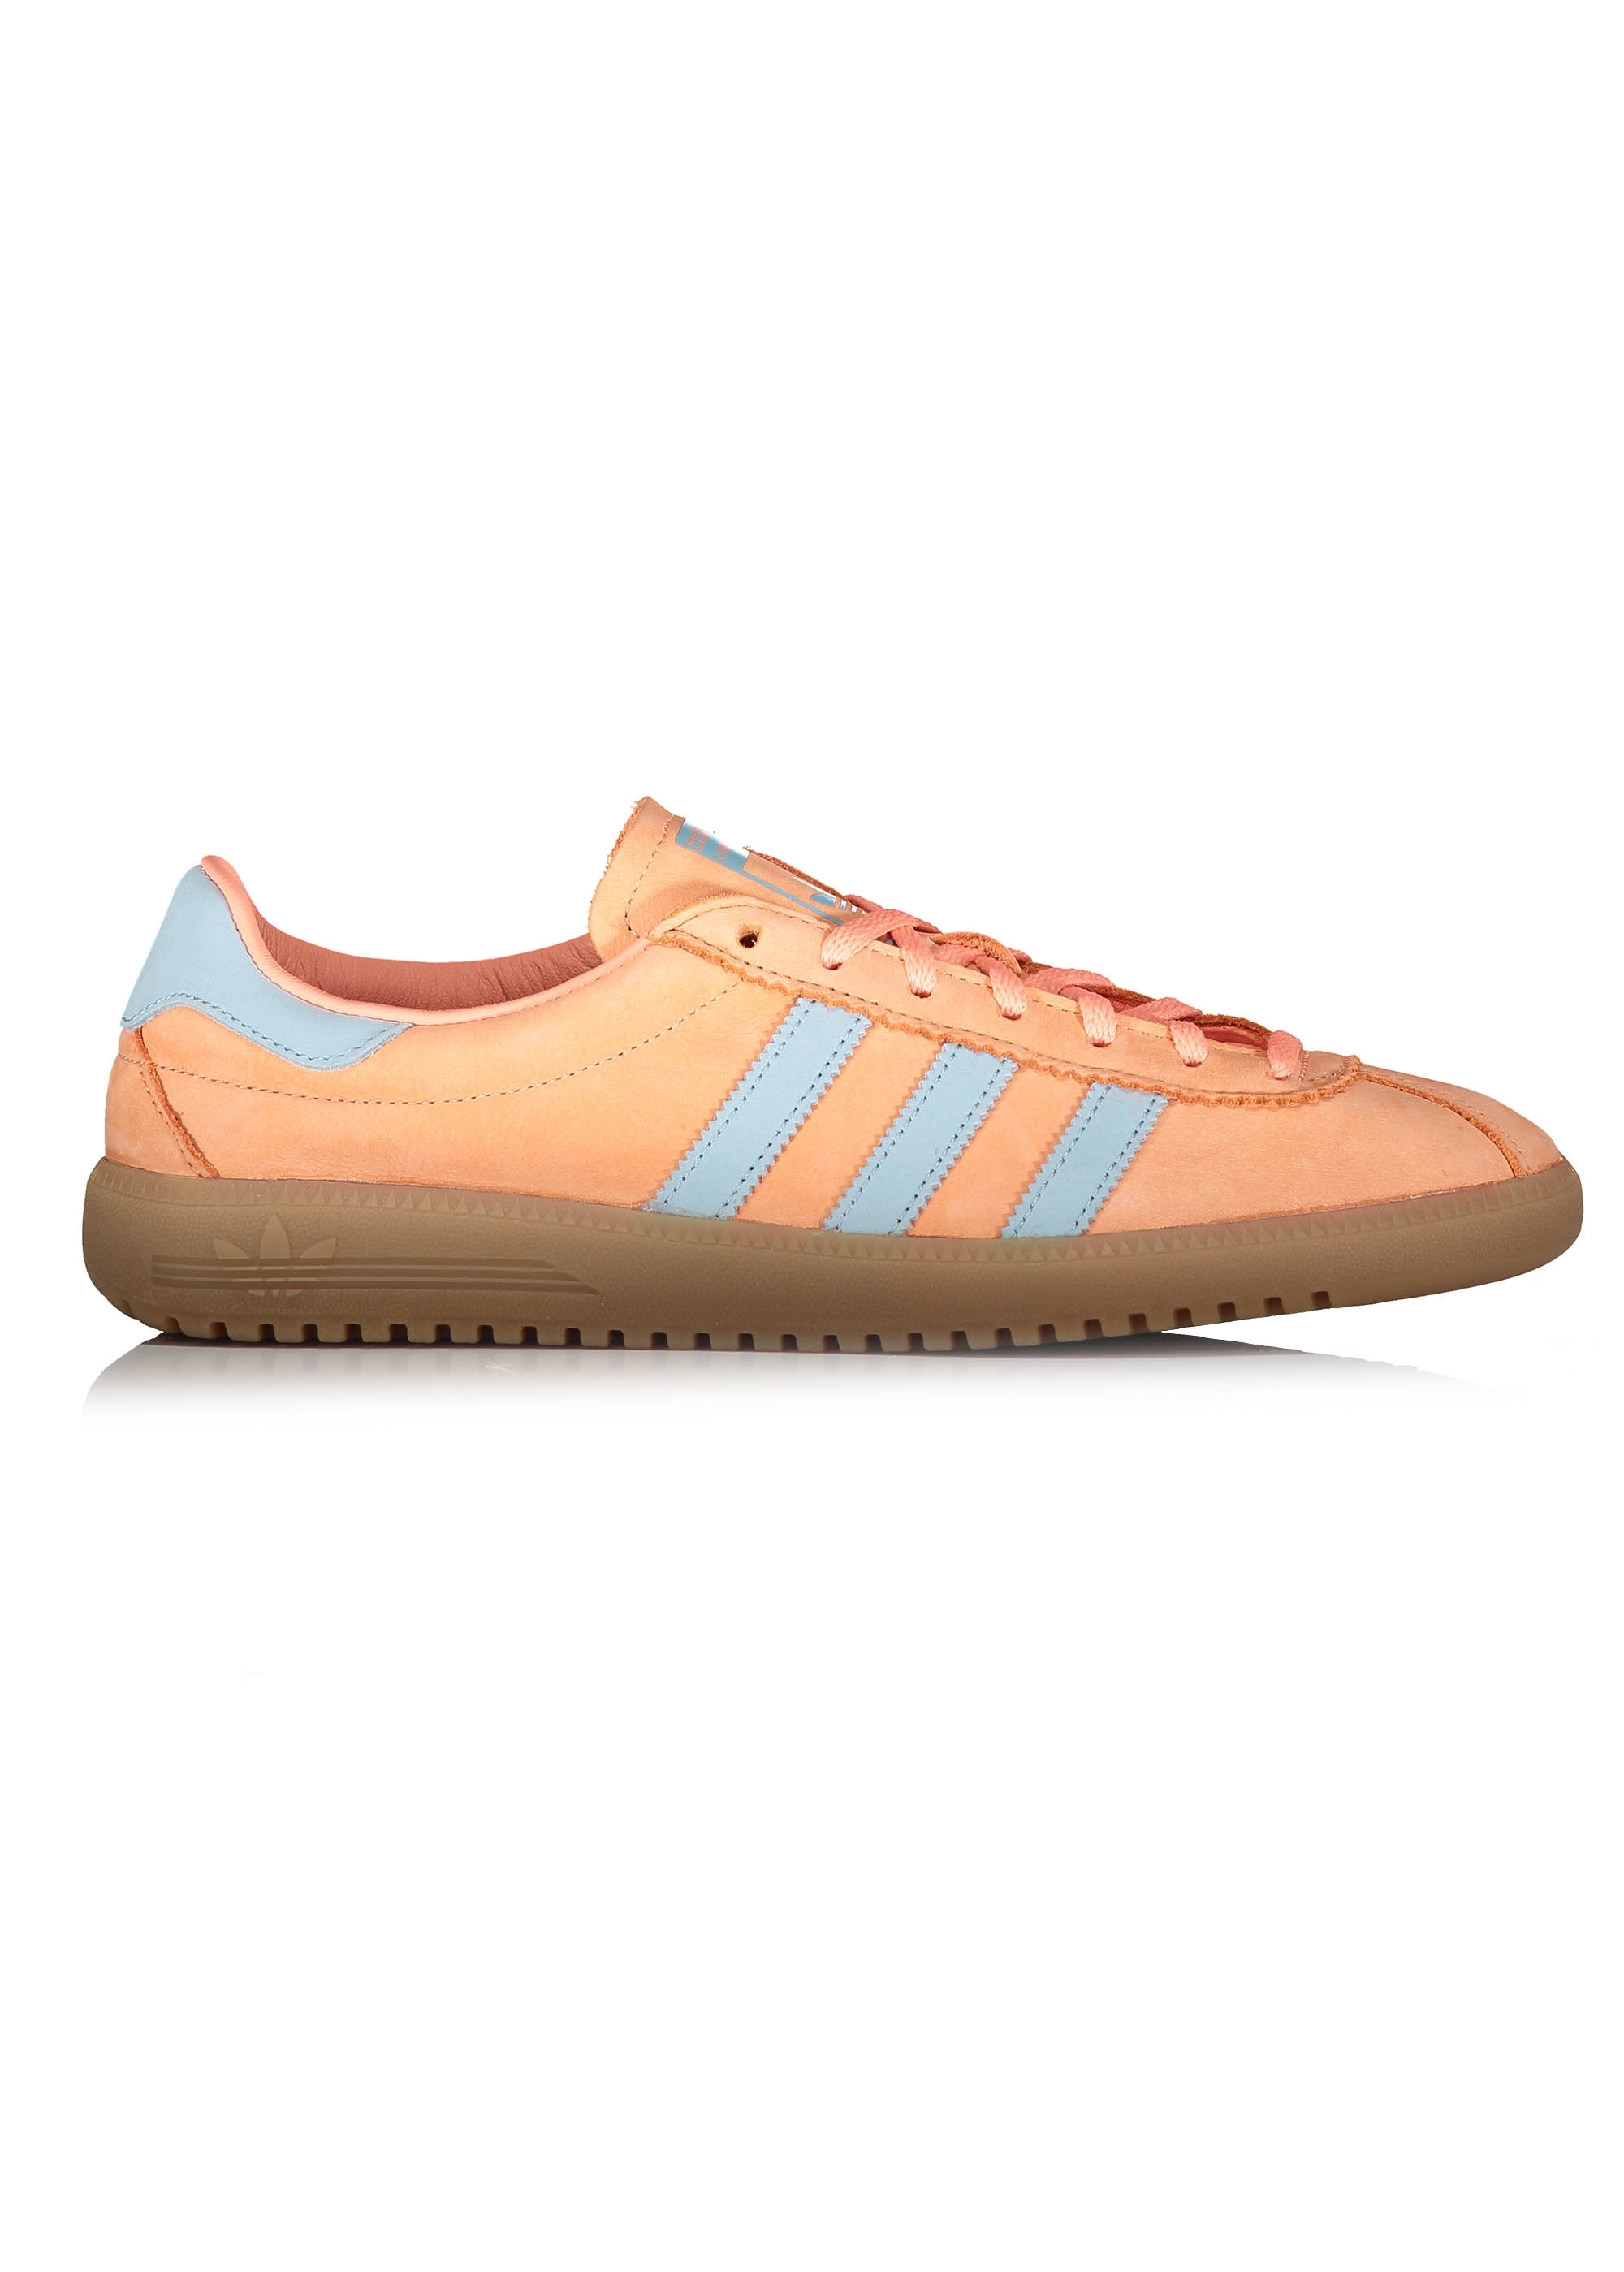 Adidas Mens Bermuda Originals From Coral Triads Uk Footwear PxFPqwr